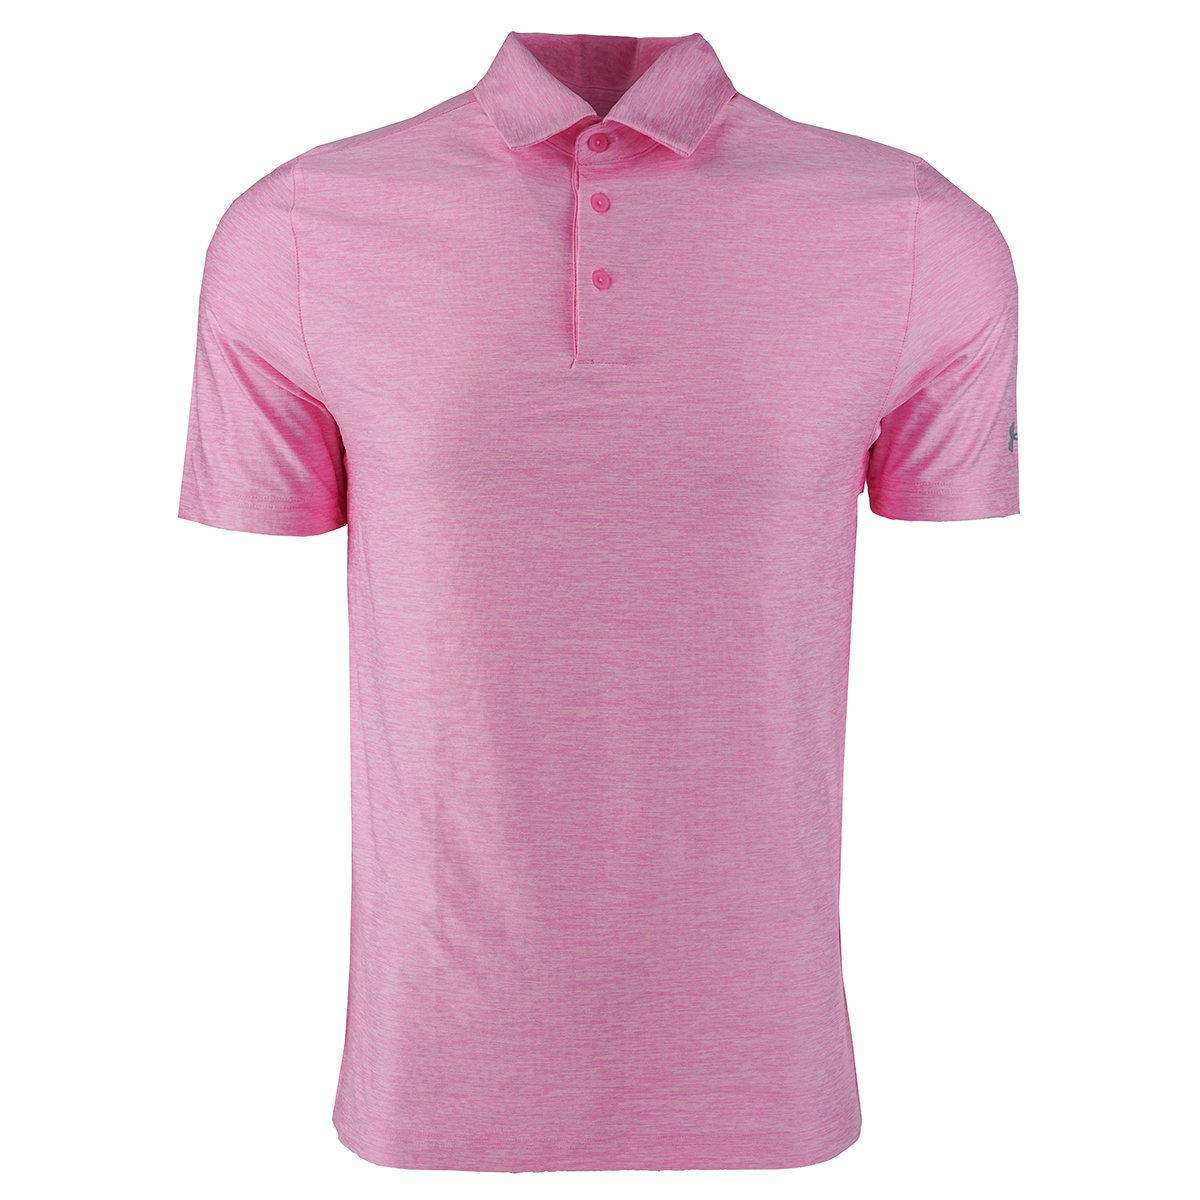 Under Armour - Polo Térmico Elevado - Rosado - Large: Amazon.es ...